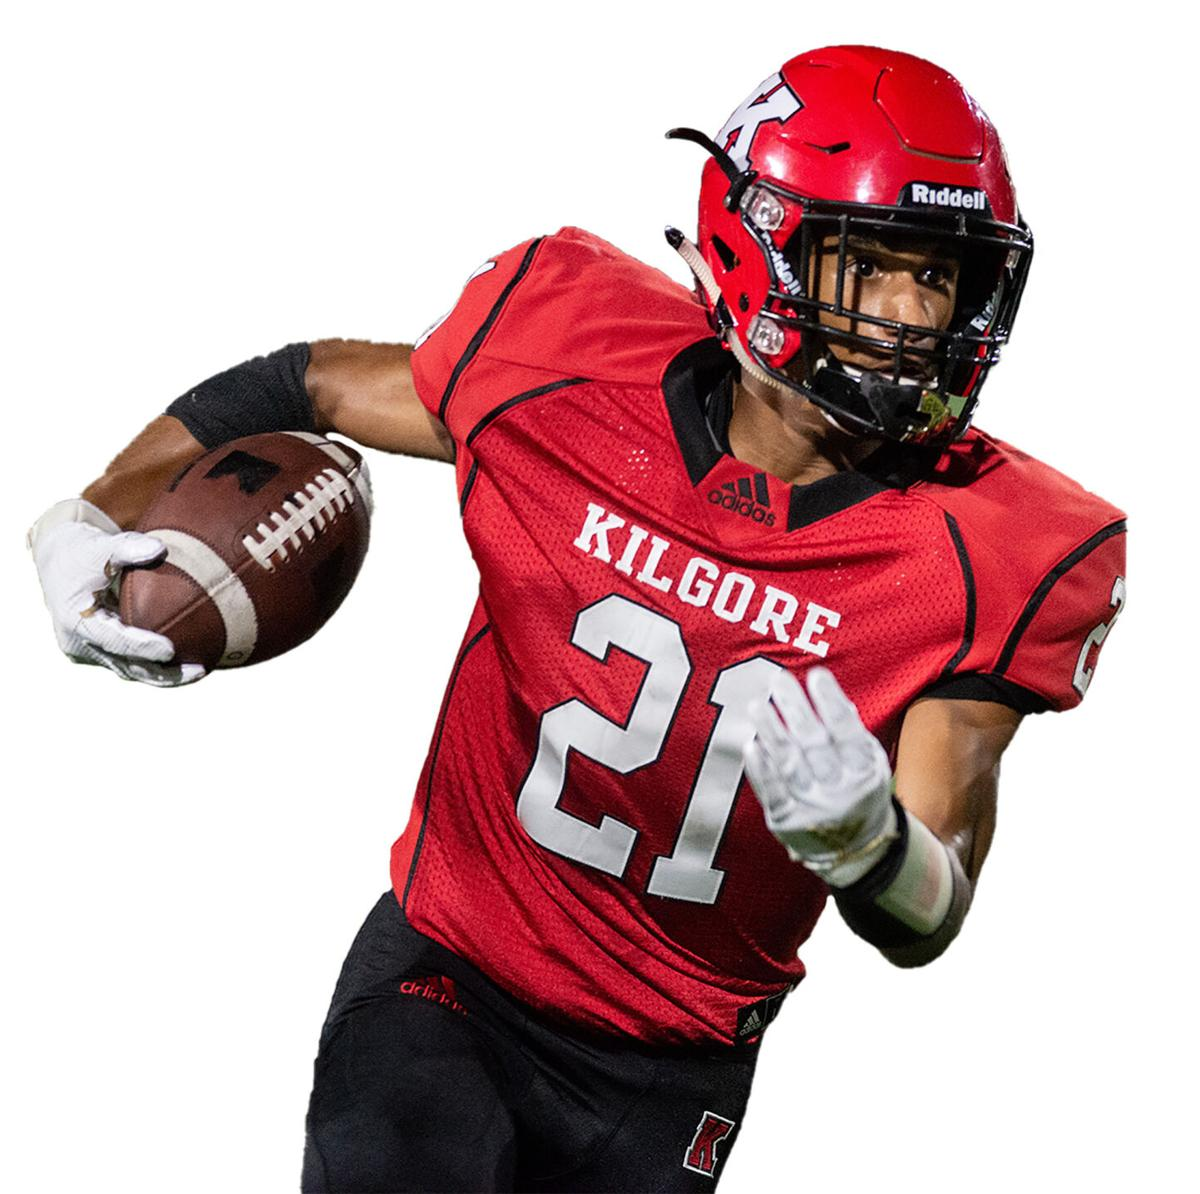 ET Football: Kilgore's Epps earns 4A Built Ford Tough honor